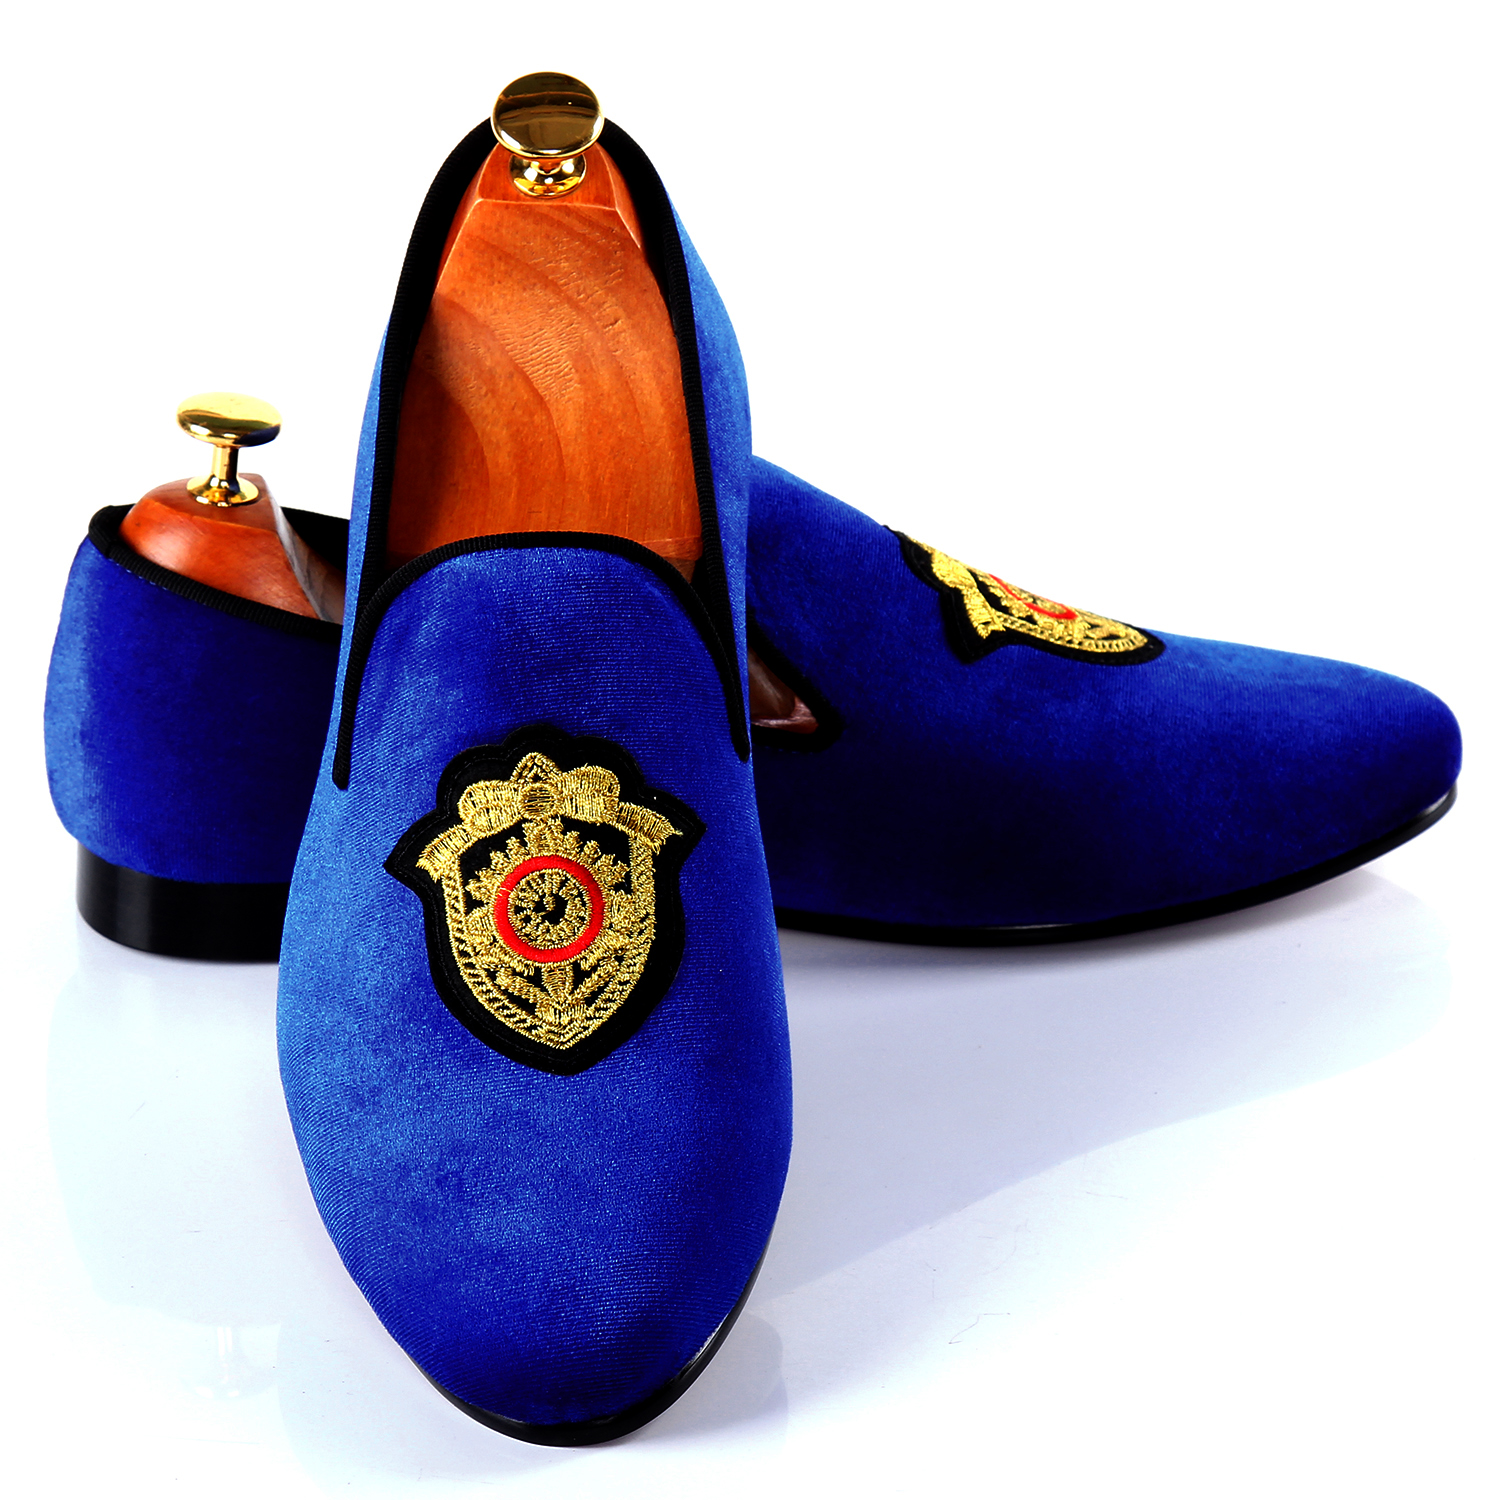 Autumn Men Shoes Casual Blue Velvet Loafers With Motif Badge Free Shipping Size 7-14